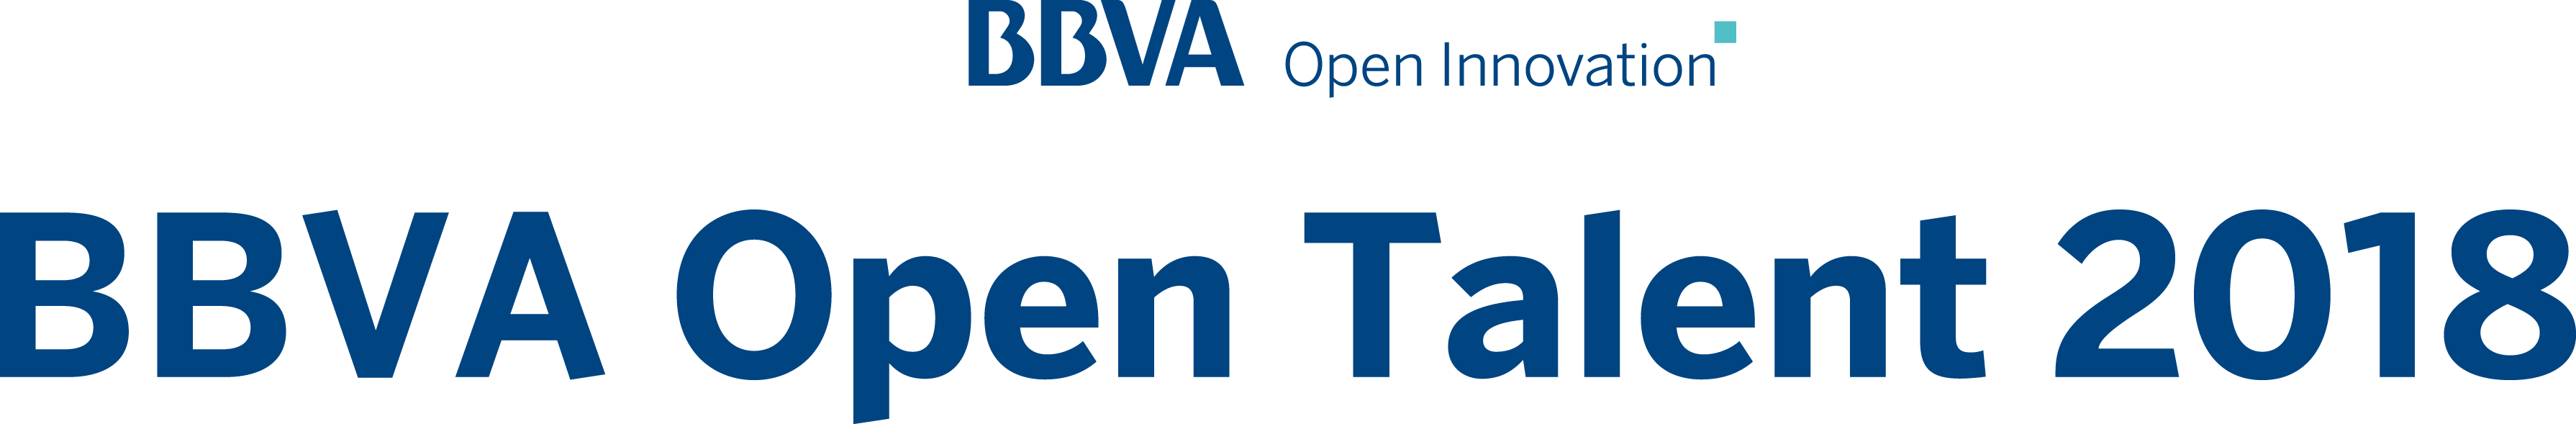 BBVA Open Talent 2018